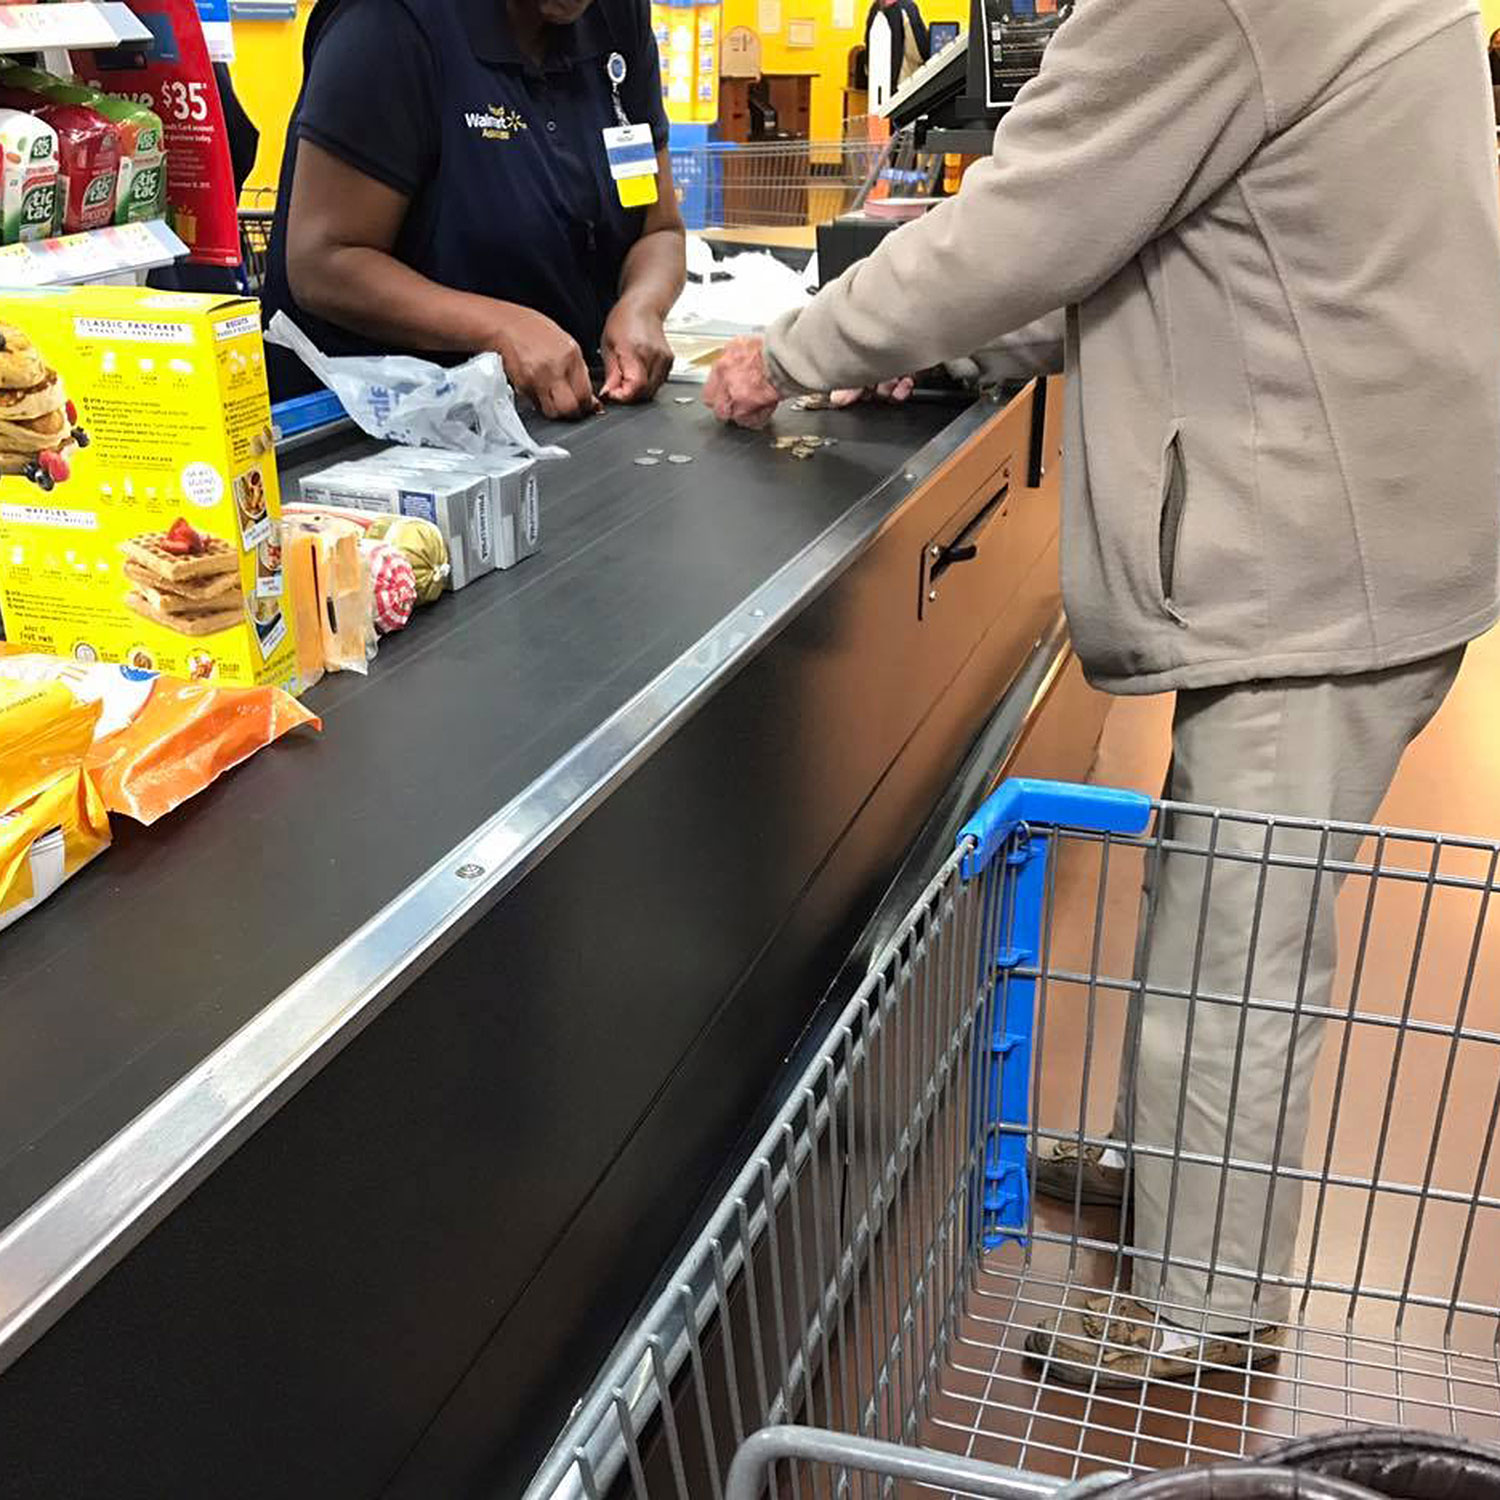 Heartwarming Photo Captures Walmart Cashier Helping Nervous Elderly Man Count His Change